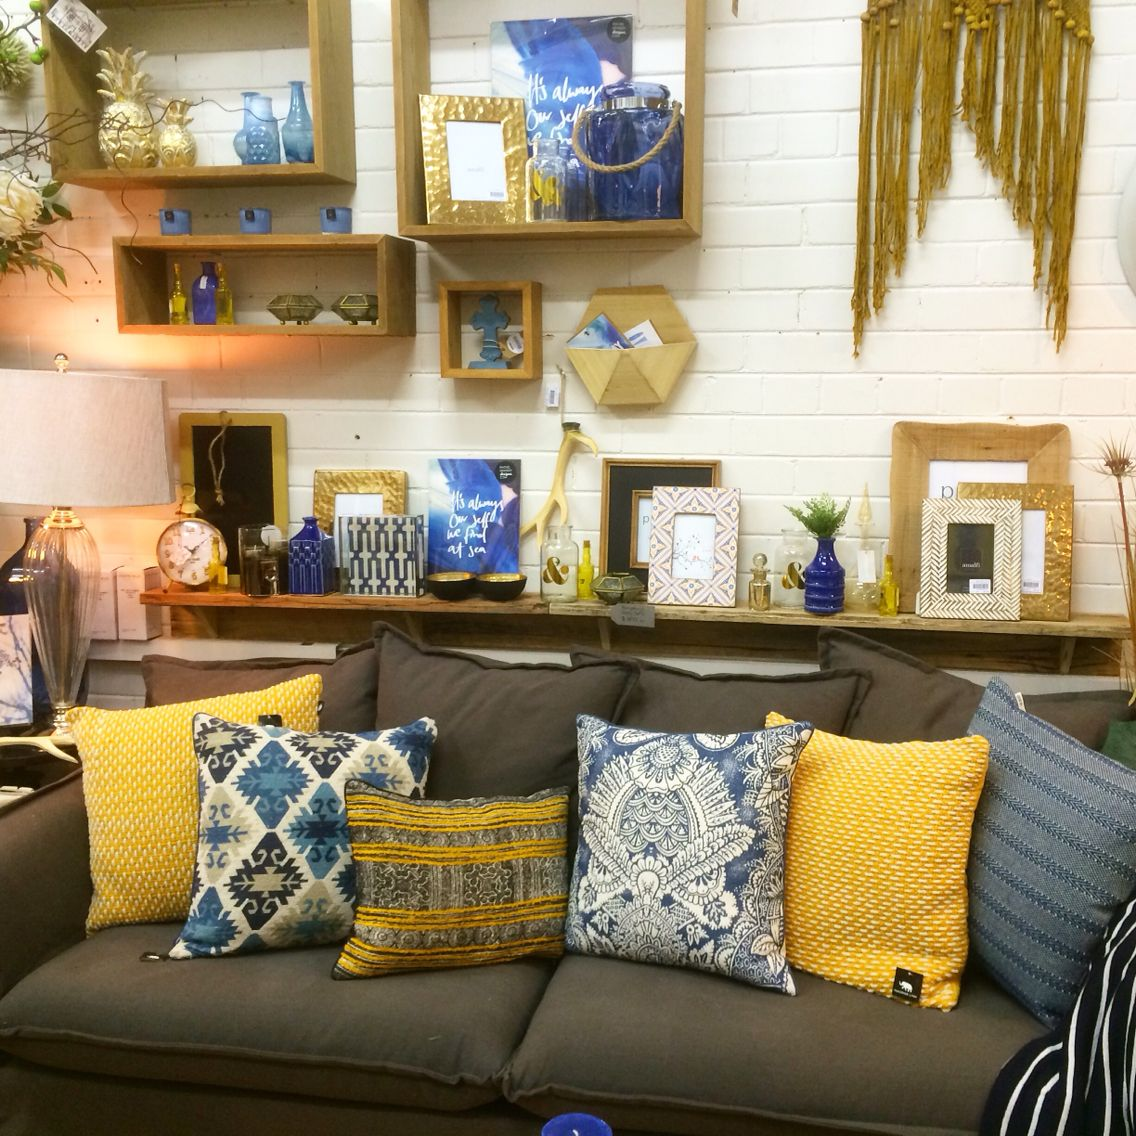 Home Decor Shop Design Ideas: Mustard And Indigo Shop Display. Home Decor And Interiors